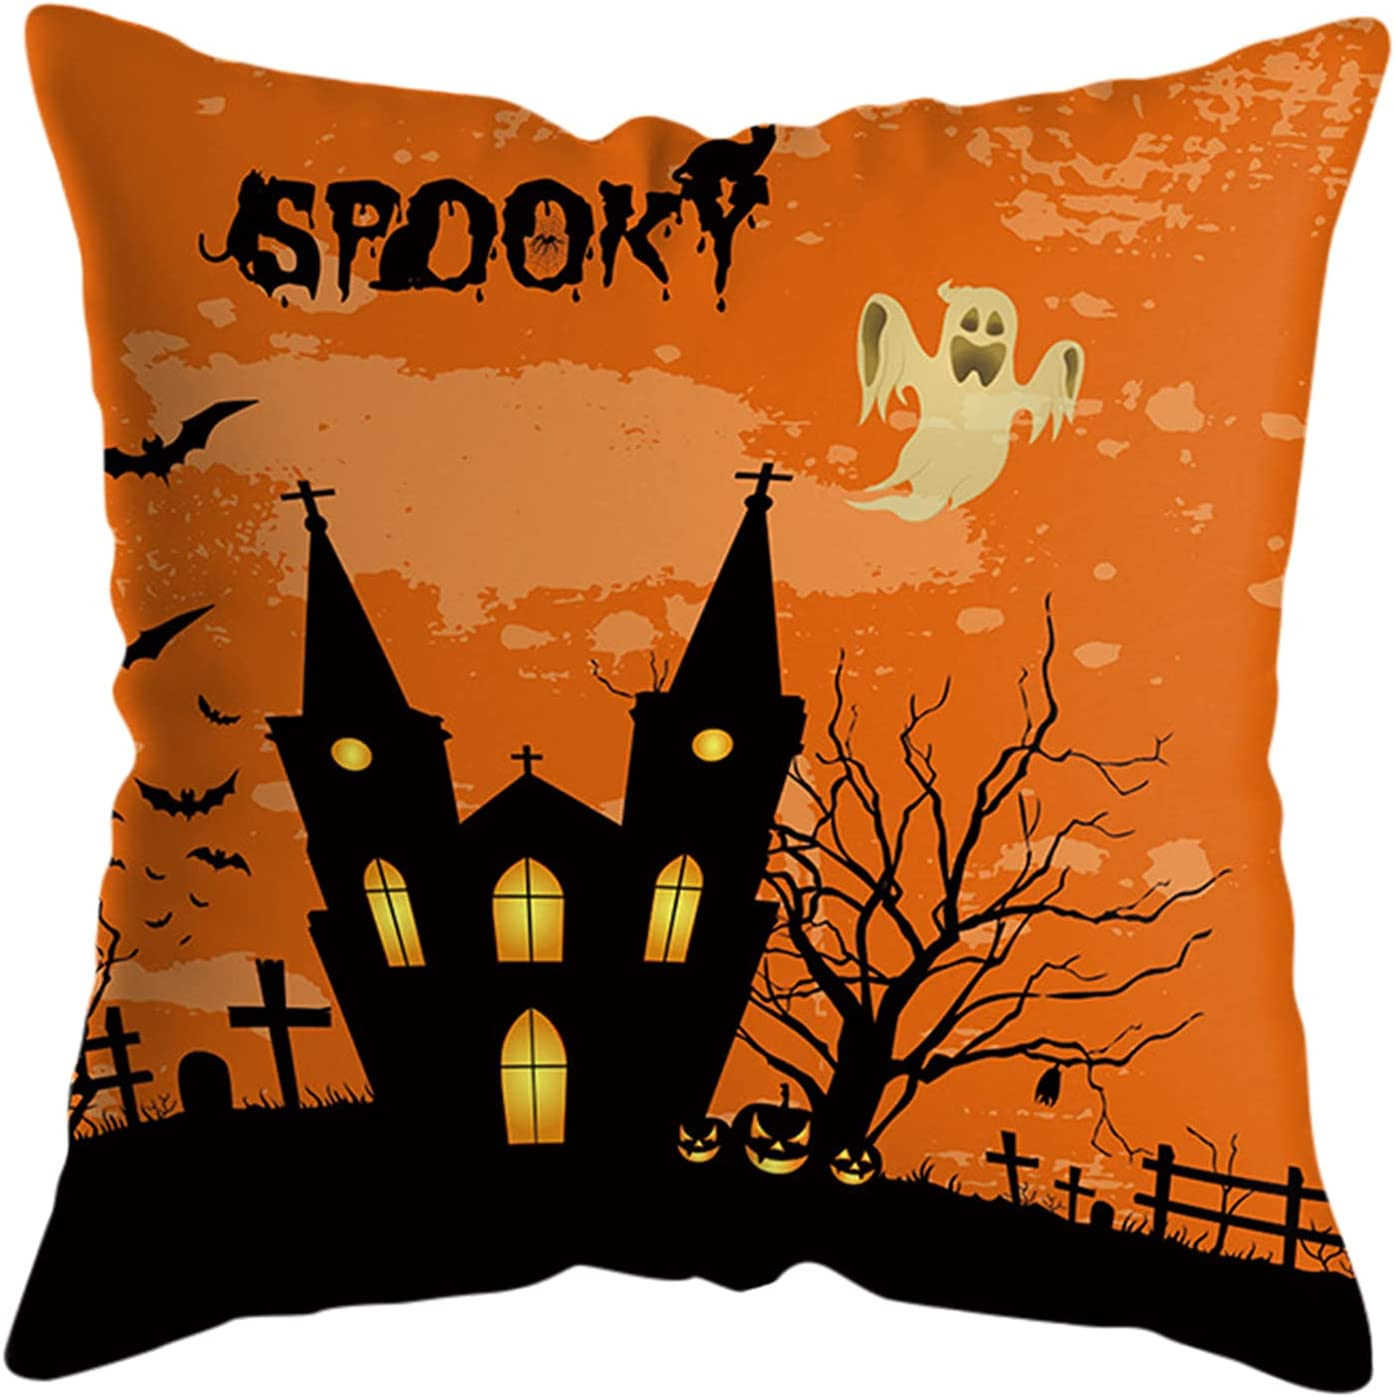 fvbhty OFFicial shop 18x18 Inches price Halloween Home Throw Decorations Pill Spooky